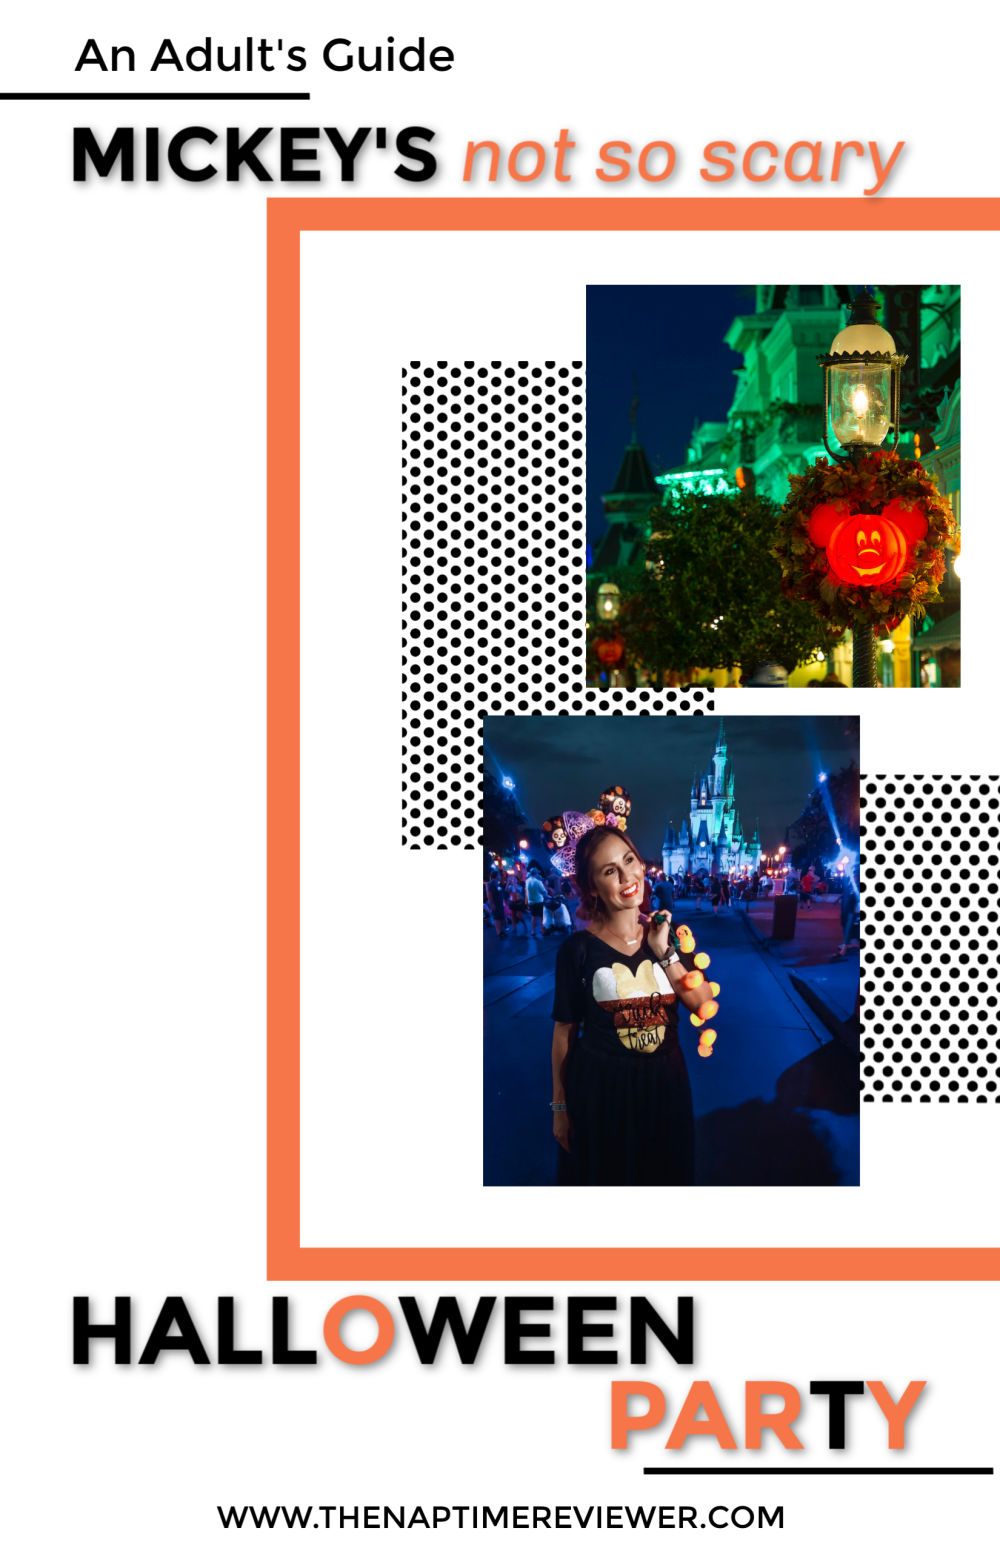 An Adult's Guide to Disney World's Mickey's NSSHP + Costume Ideas